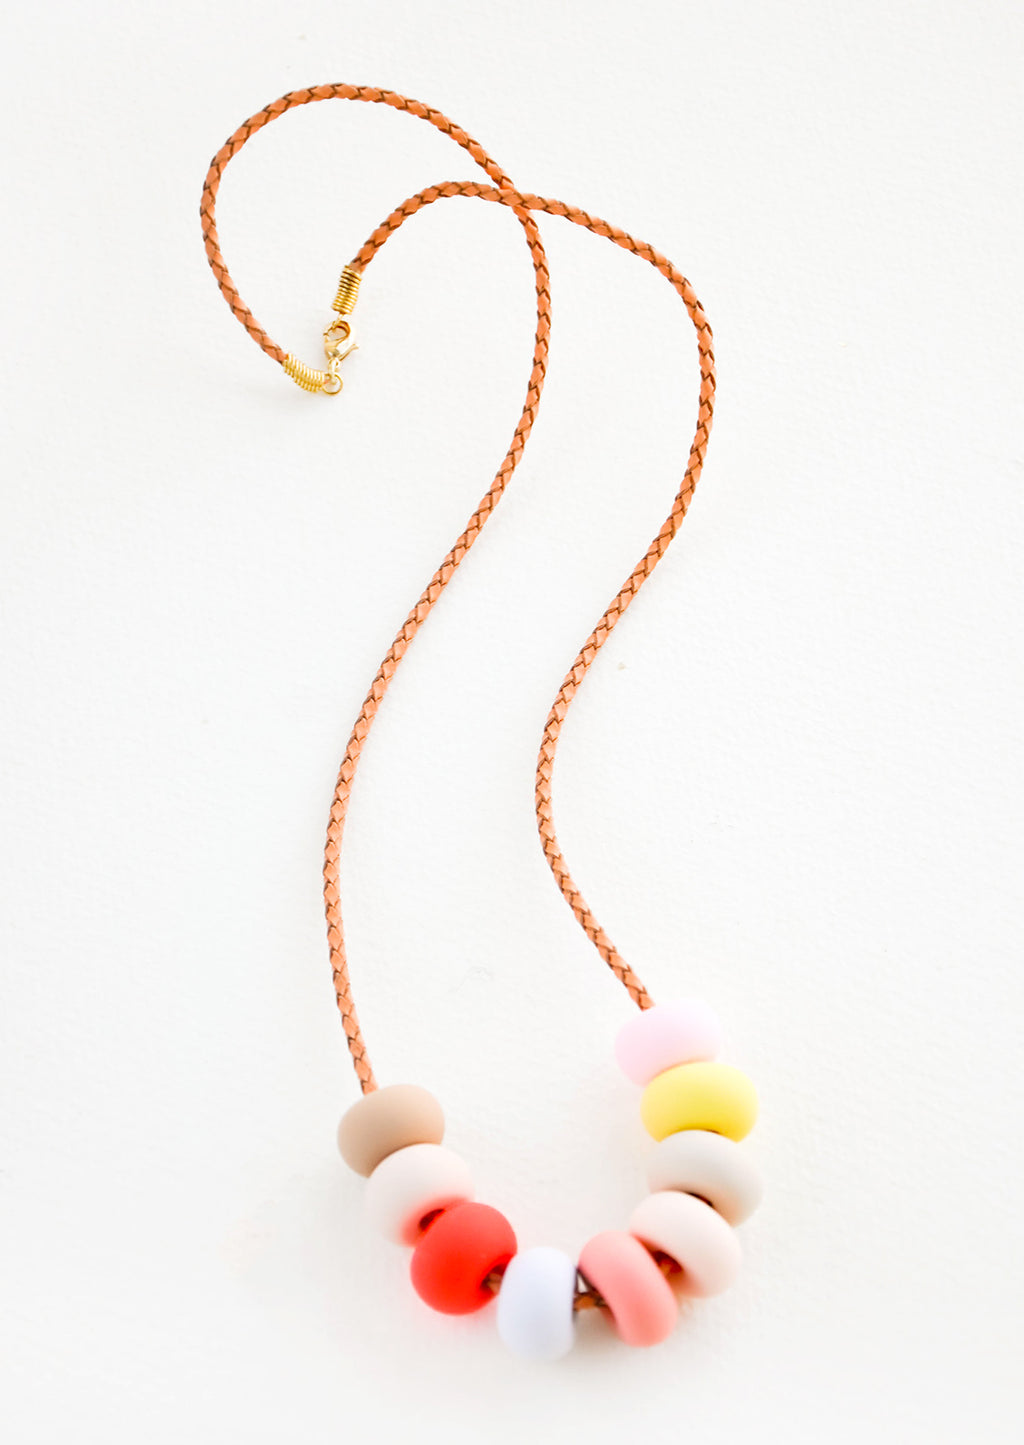 Italian Ice: Woven leather cord necklace with gold clasp and rounded clay beads tans, pinks, red, blue, and yellow.